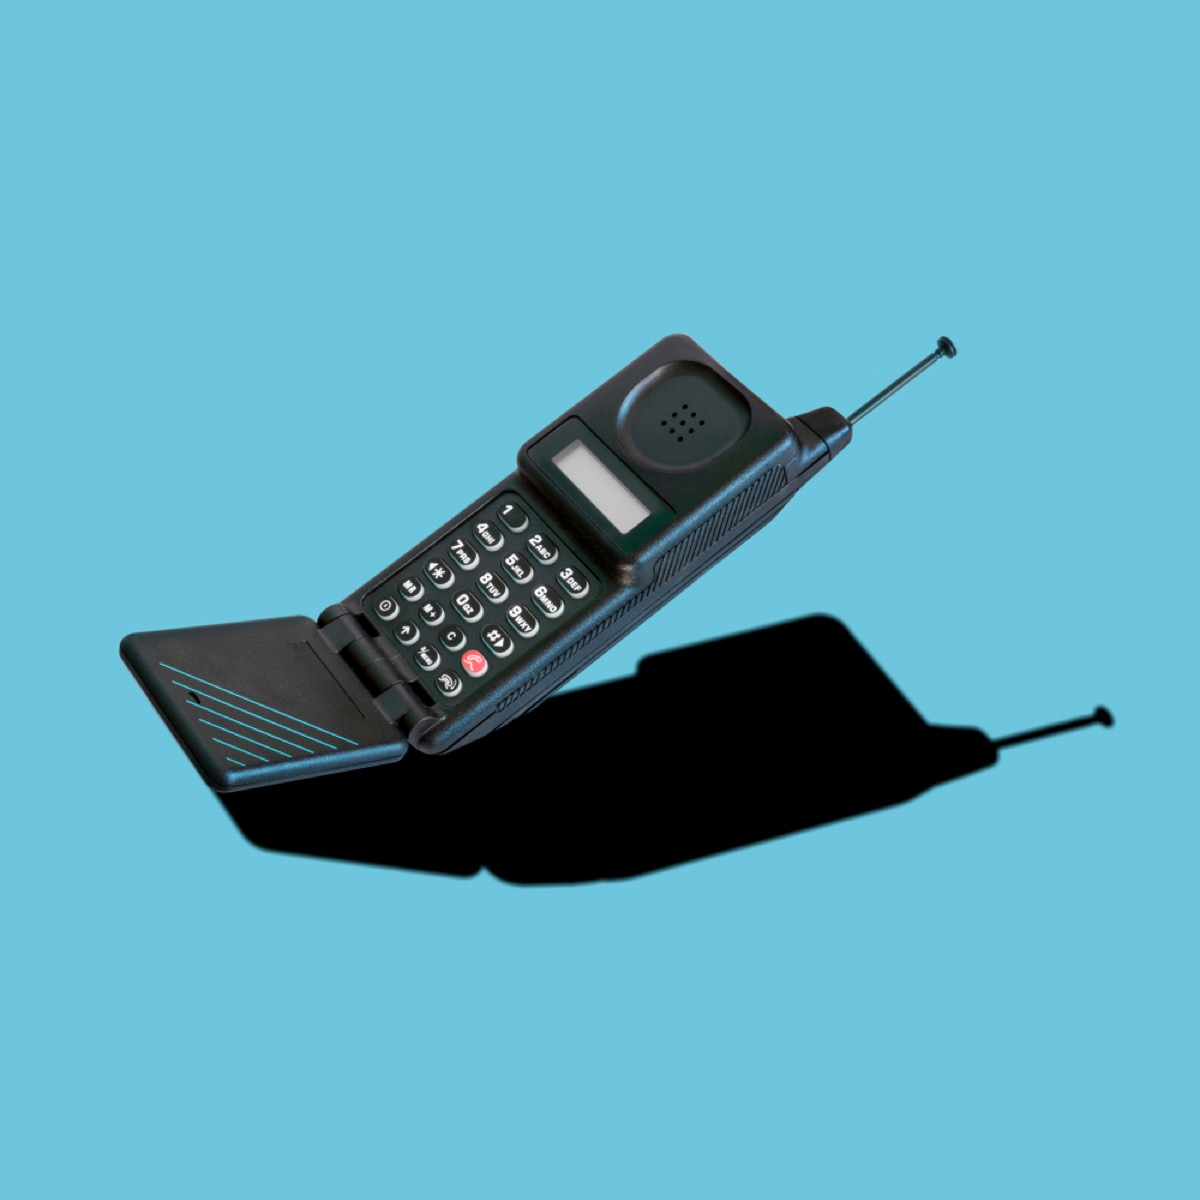 90s motorola cell phone, things only 90s kids remember